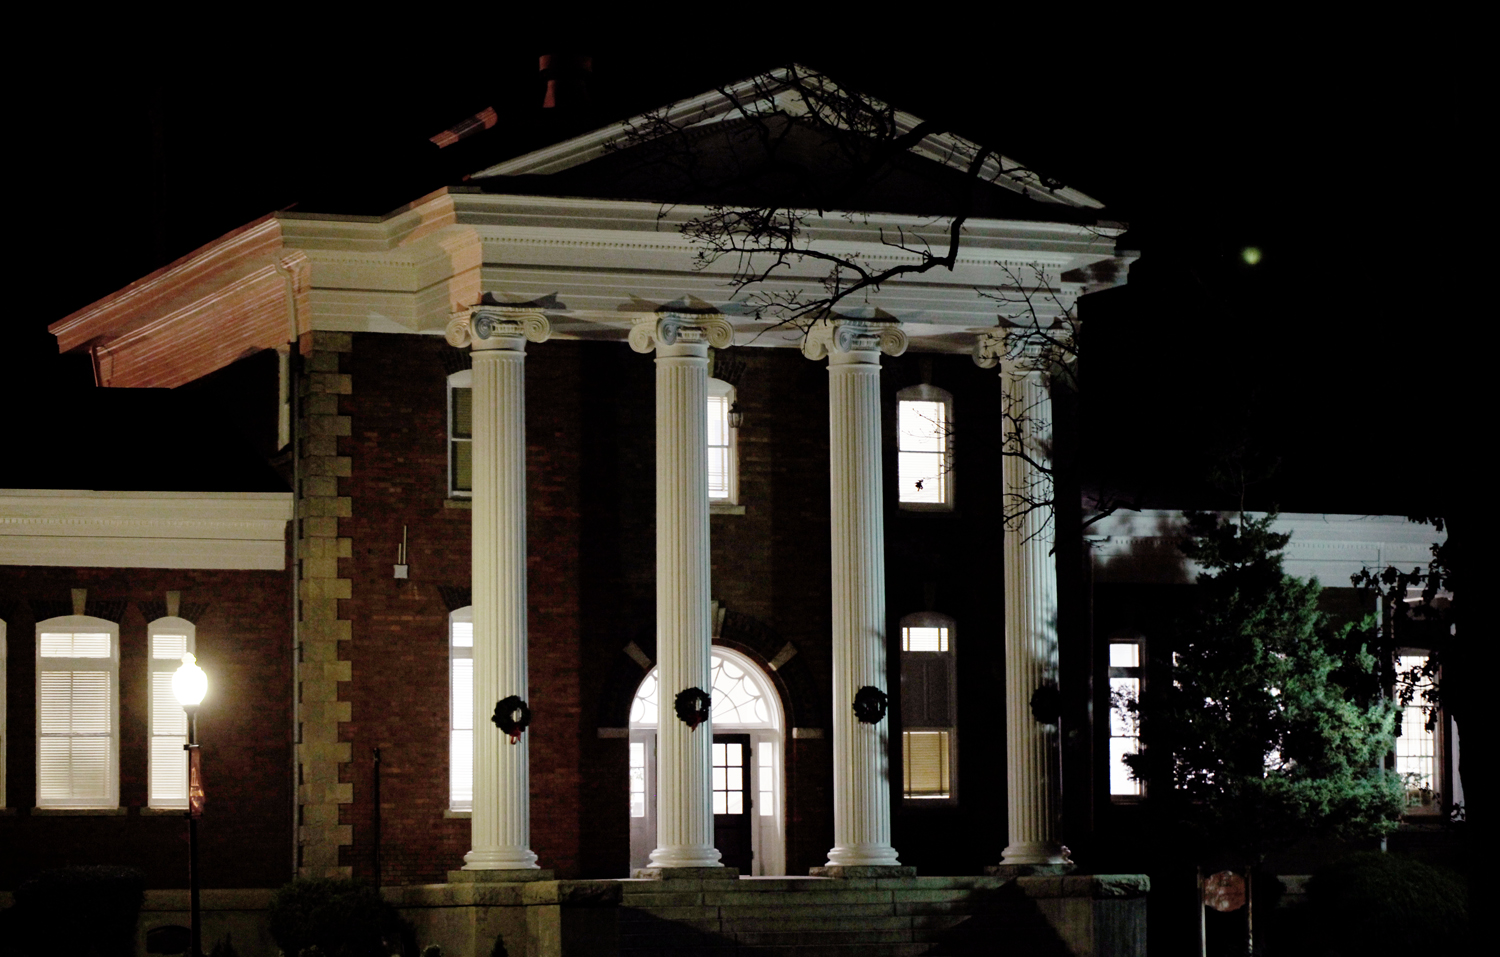 carnegie library at night author kelly landrum